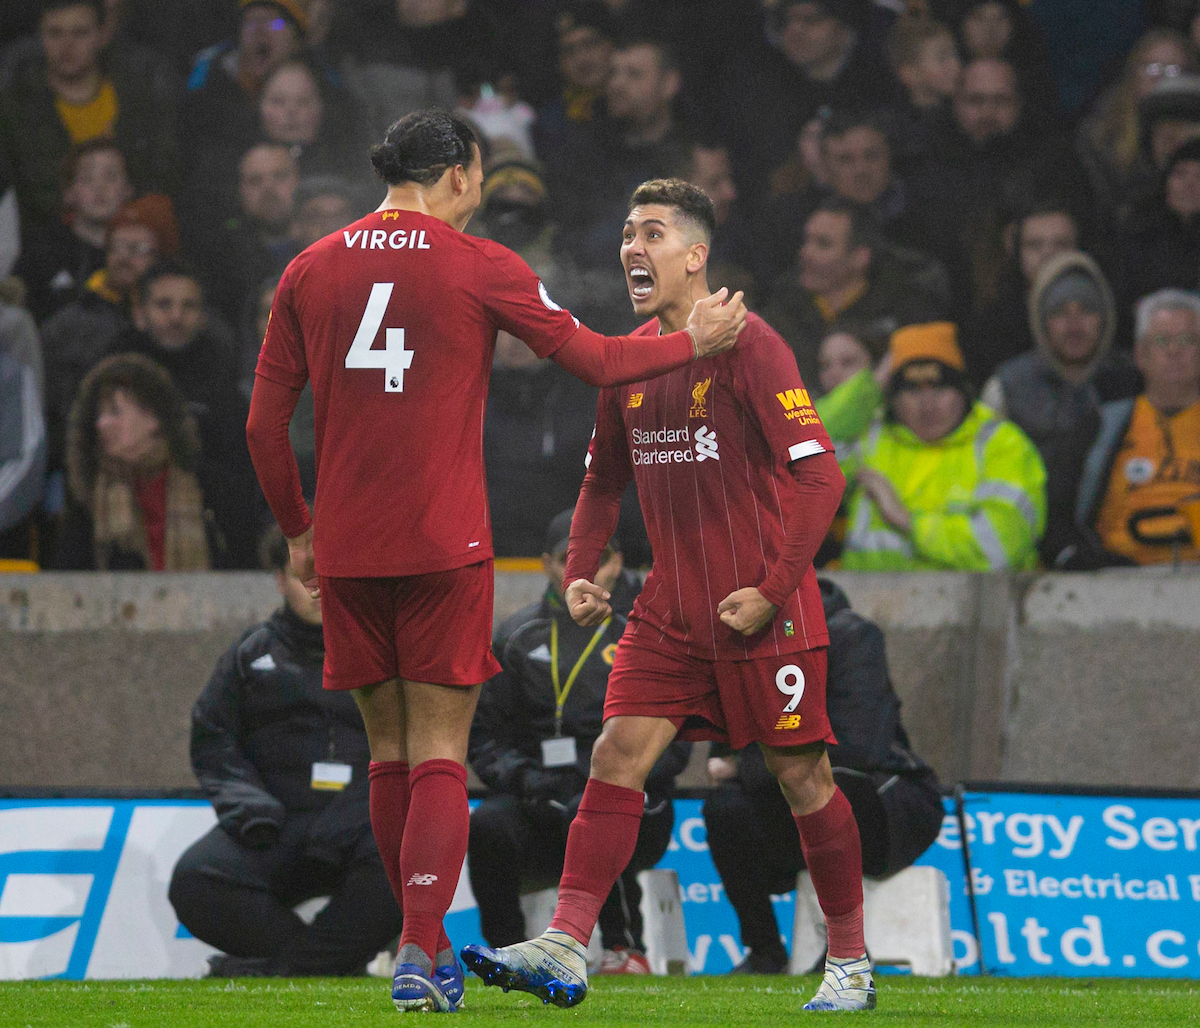 WOLVERHAMPTON, ENGLAND - Thursday, January 23, 2020: Liverpool's Roberto Firmino (R) celebrates scoring the second goal with team-mate Virgil van Dijk during the FA Premier League match between Wolverhampton Wanderers FC and Liverpool FC at Molineux Stadium. (Pic by David Rawcliffe/Propaganda)